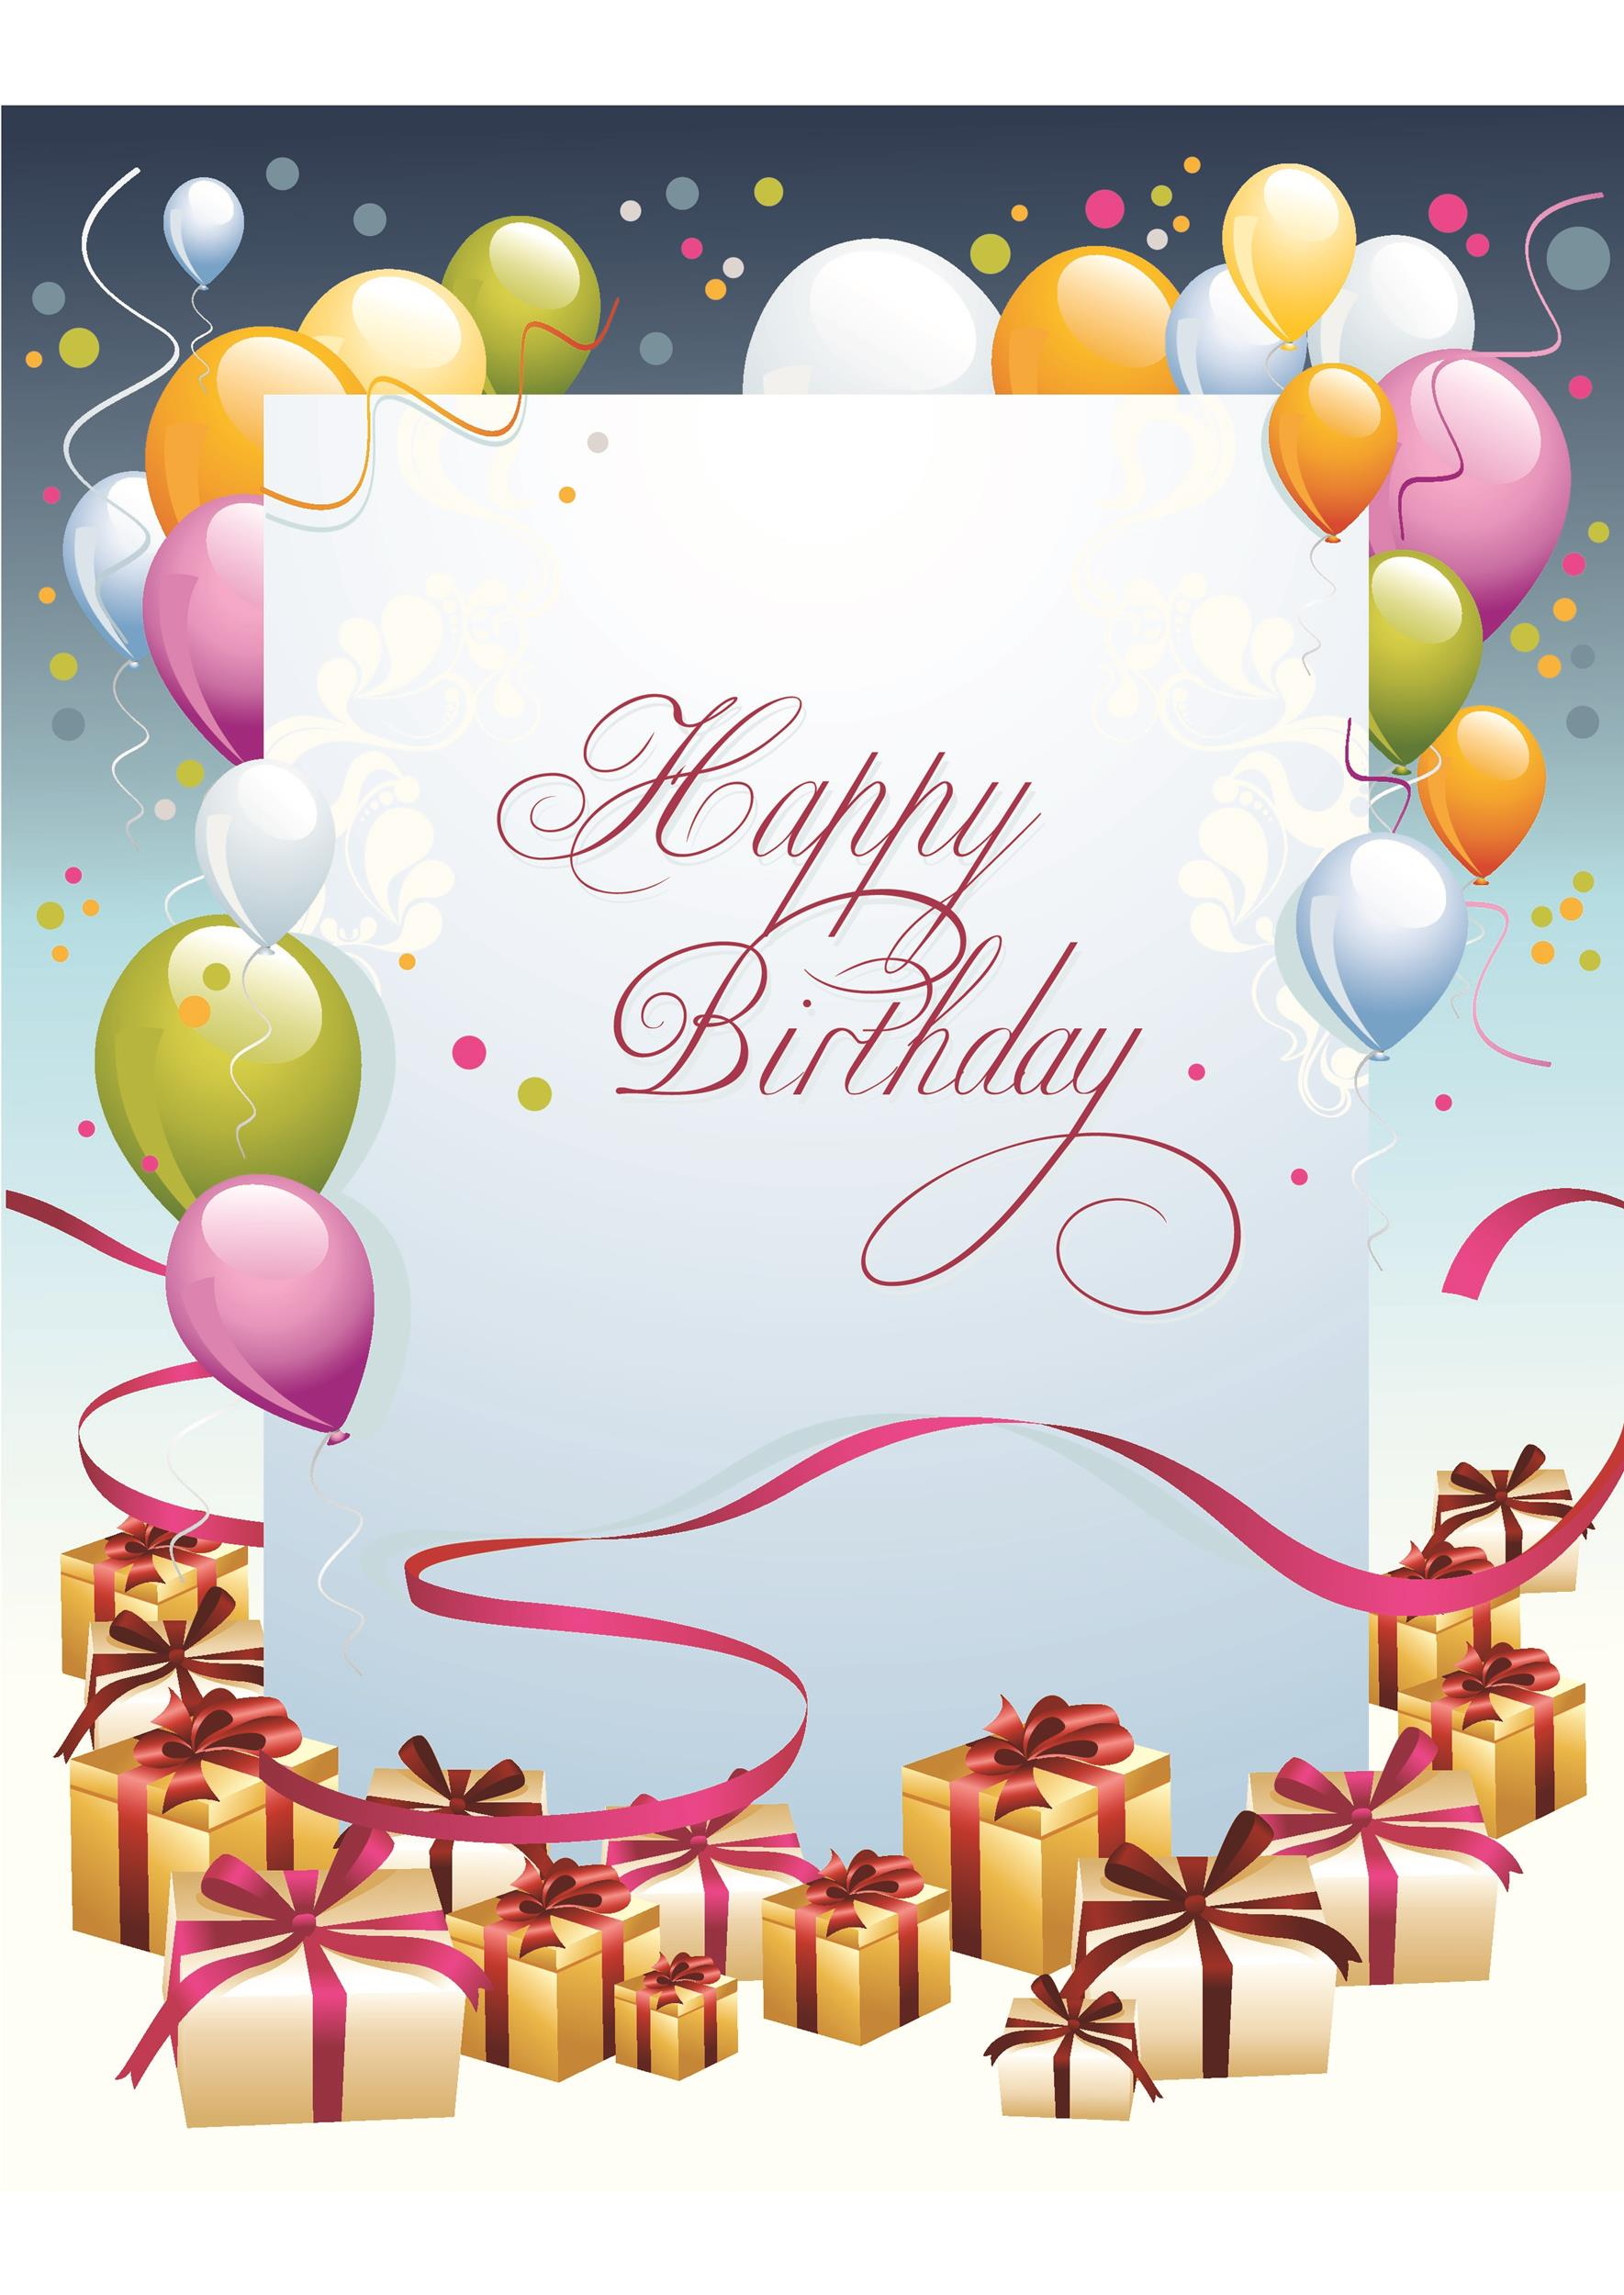 Free download birthday card template gidiyedformapolitica free download birthday card template bookmarktalkfo Choice Image